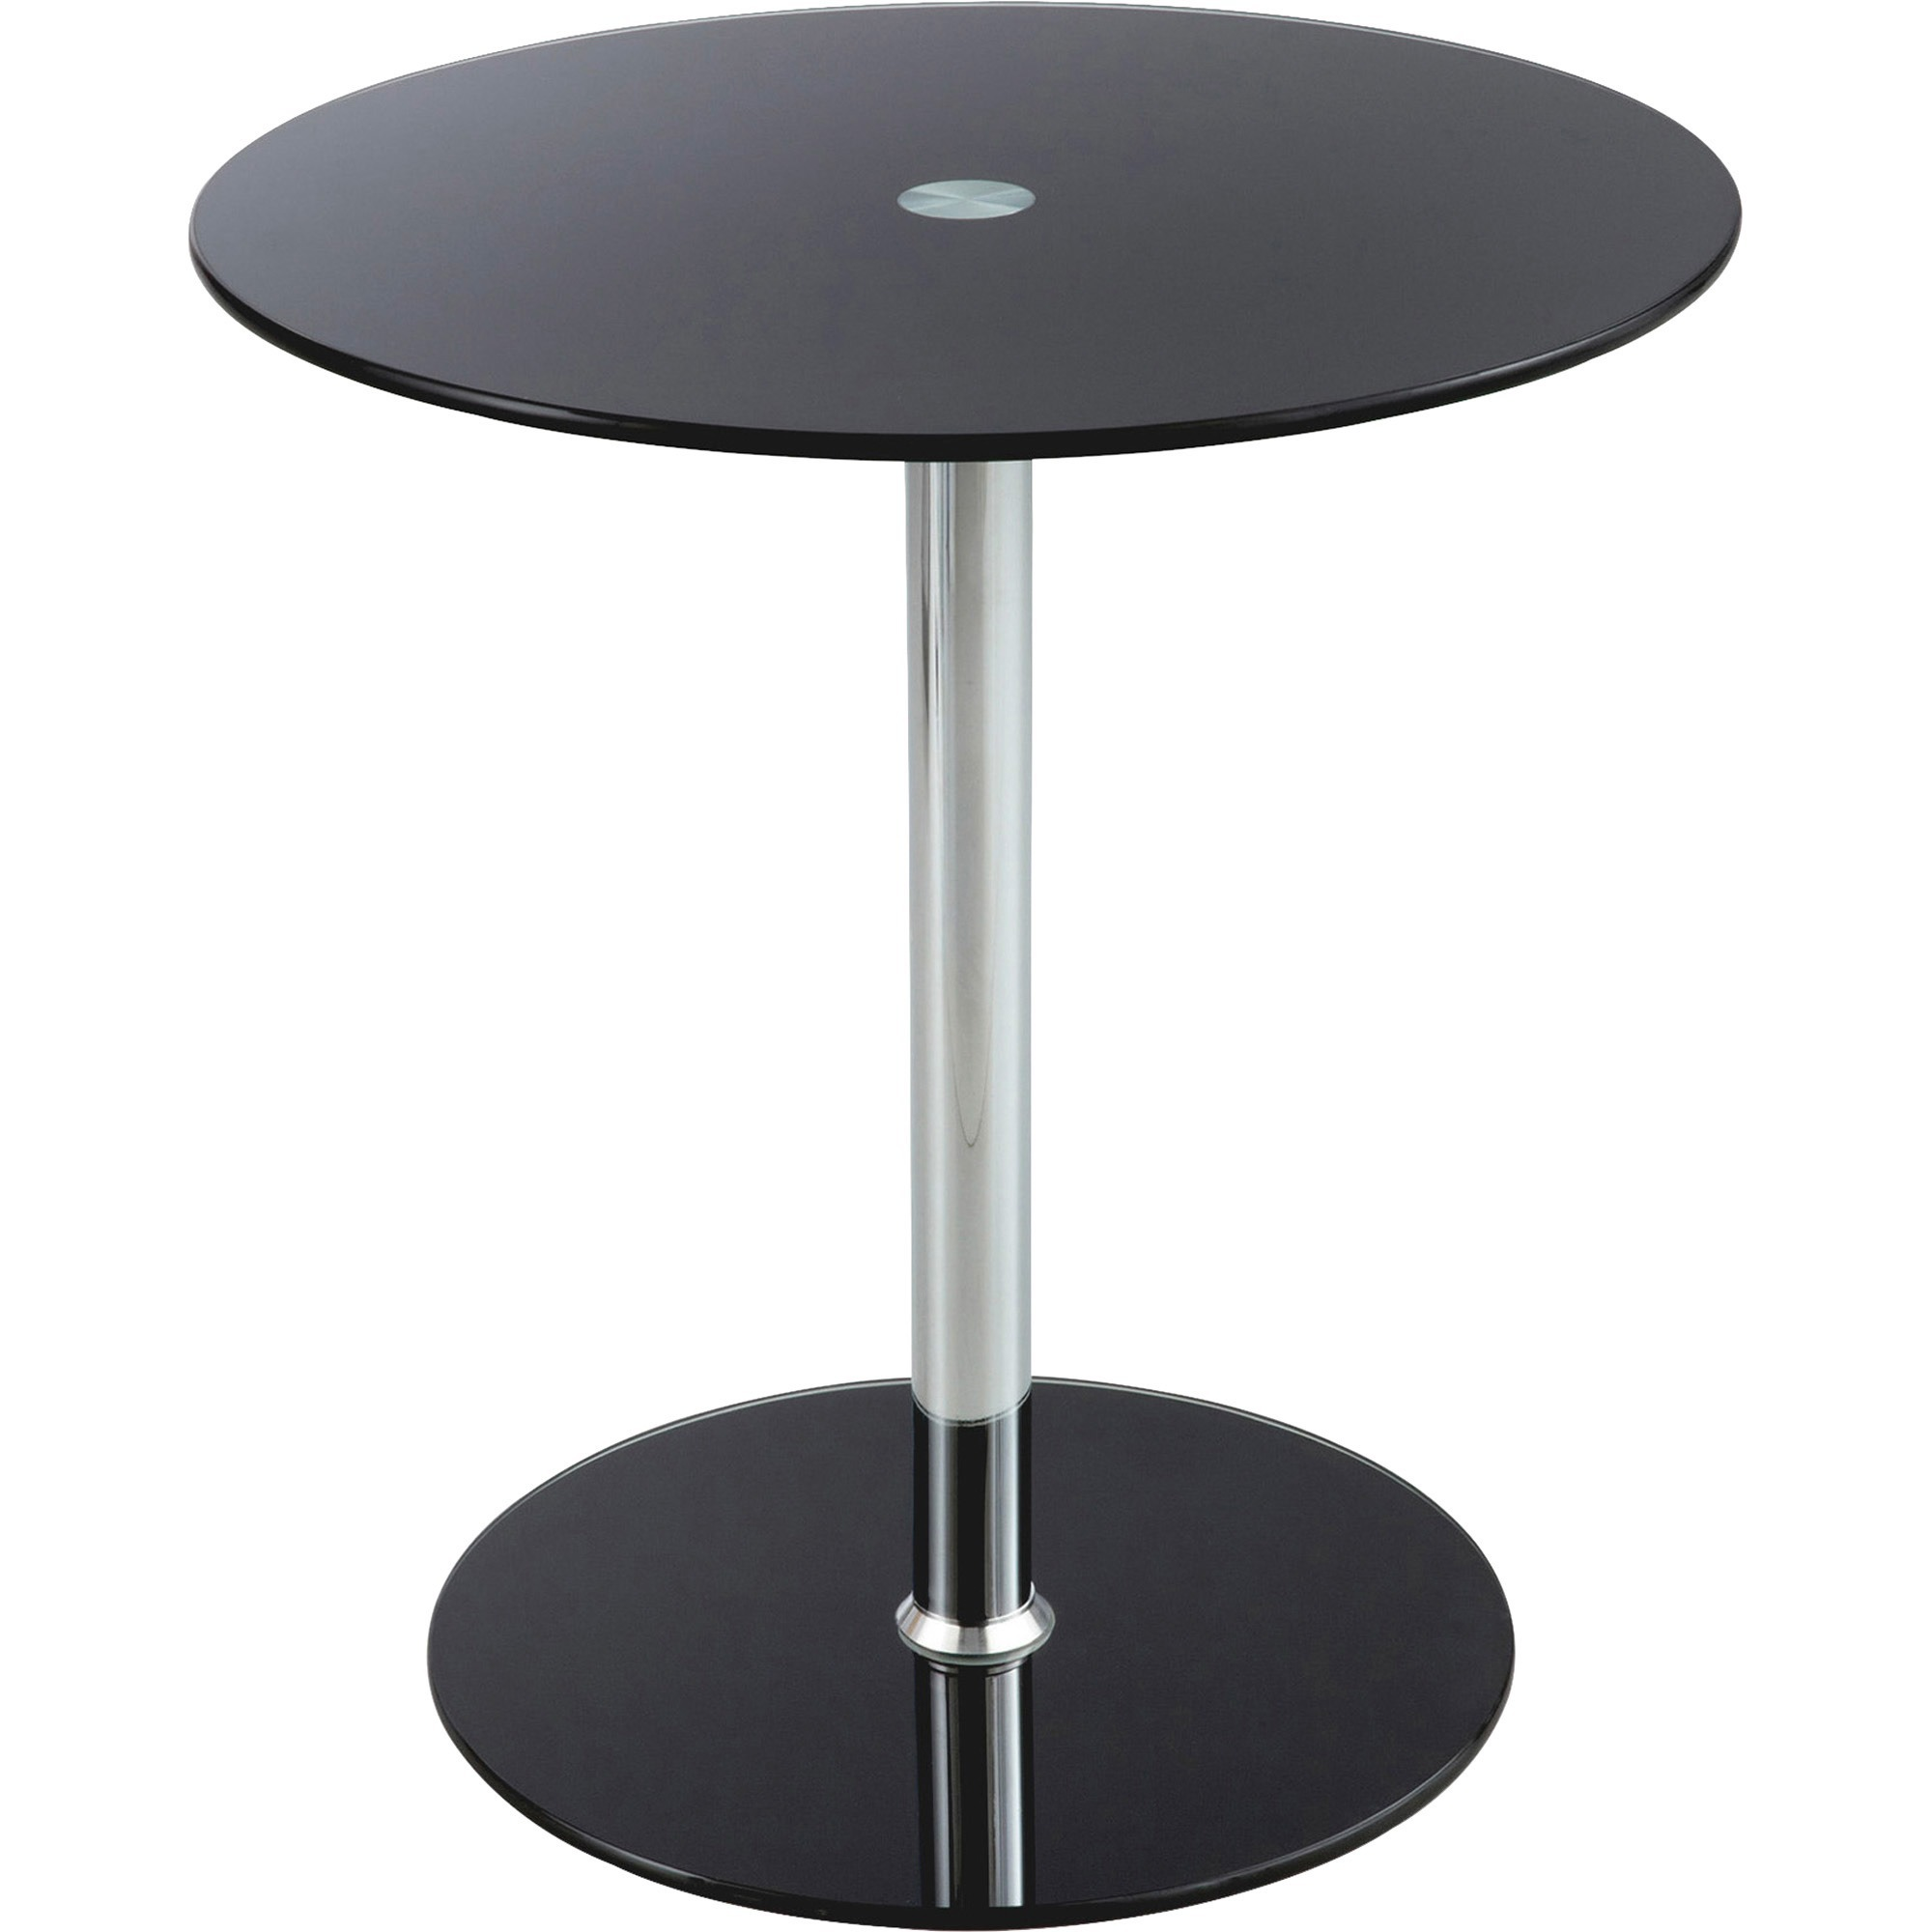 power surge technologies ltd furniture collections accent table with safco tempered glass round top diameter height assembly required black chrome steel tablecloth dining